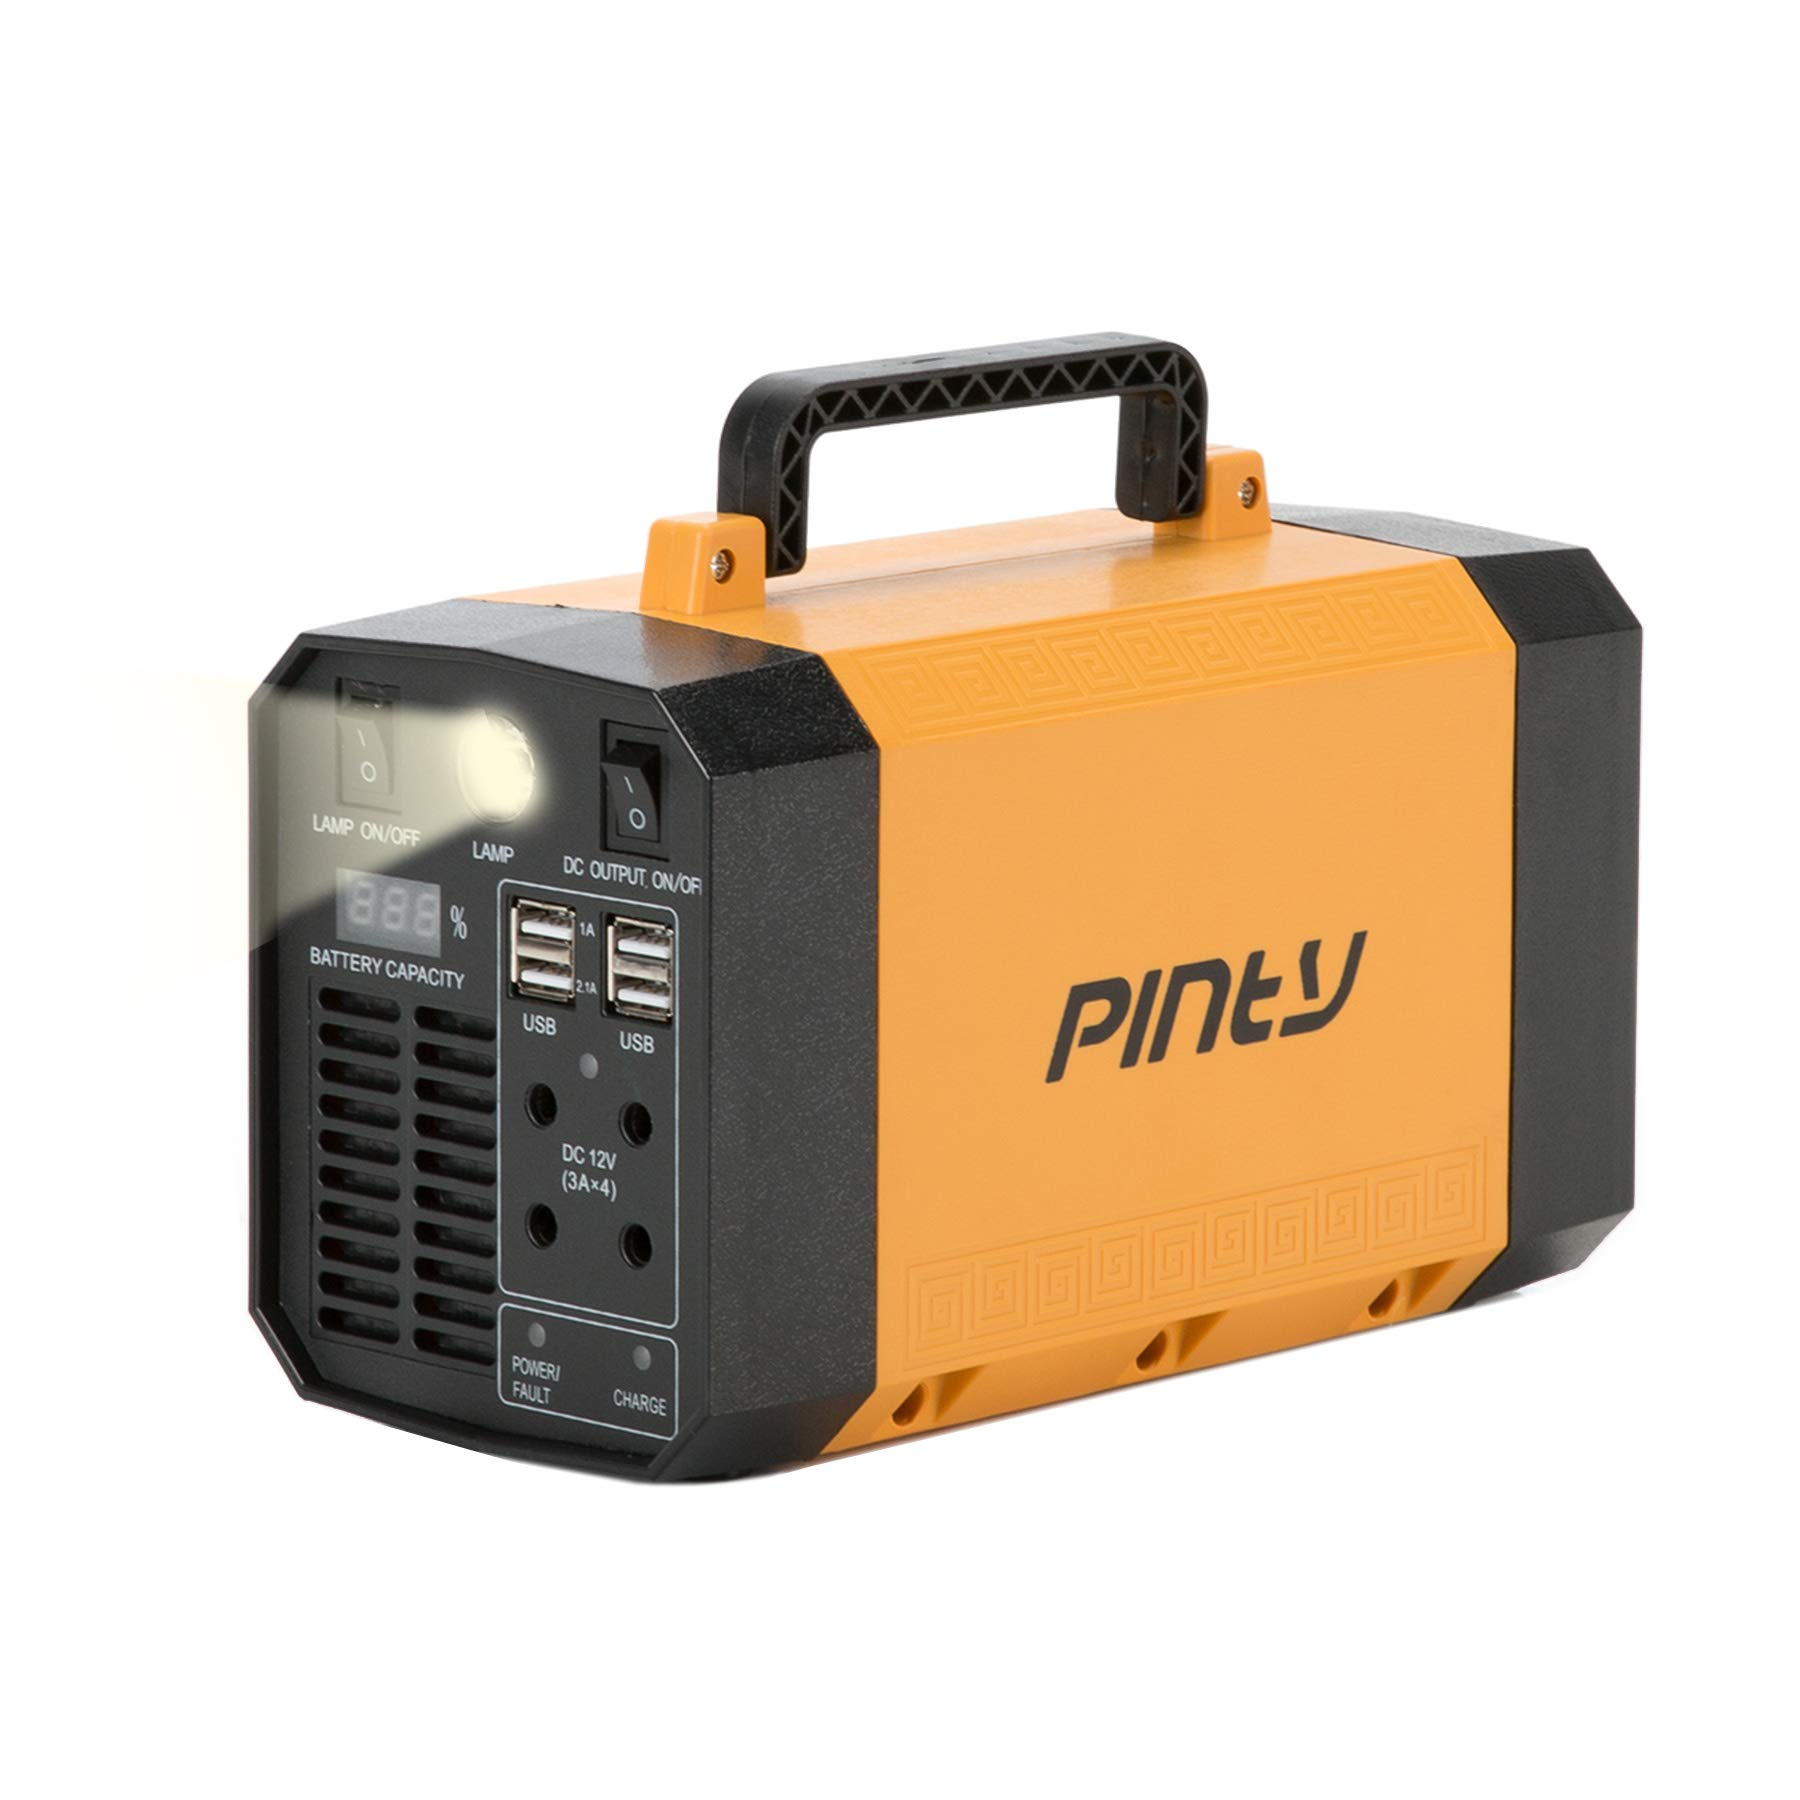 Pinty Portable Uninterrupted Power Supply, UPS Battery Backup, Rechargeable Generator Power Source with AC Inverter, USB, DC 12V Outputs for Outdoors and Indoors (300W, Yellow)